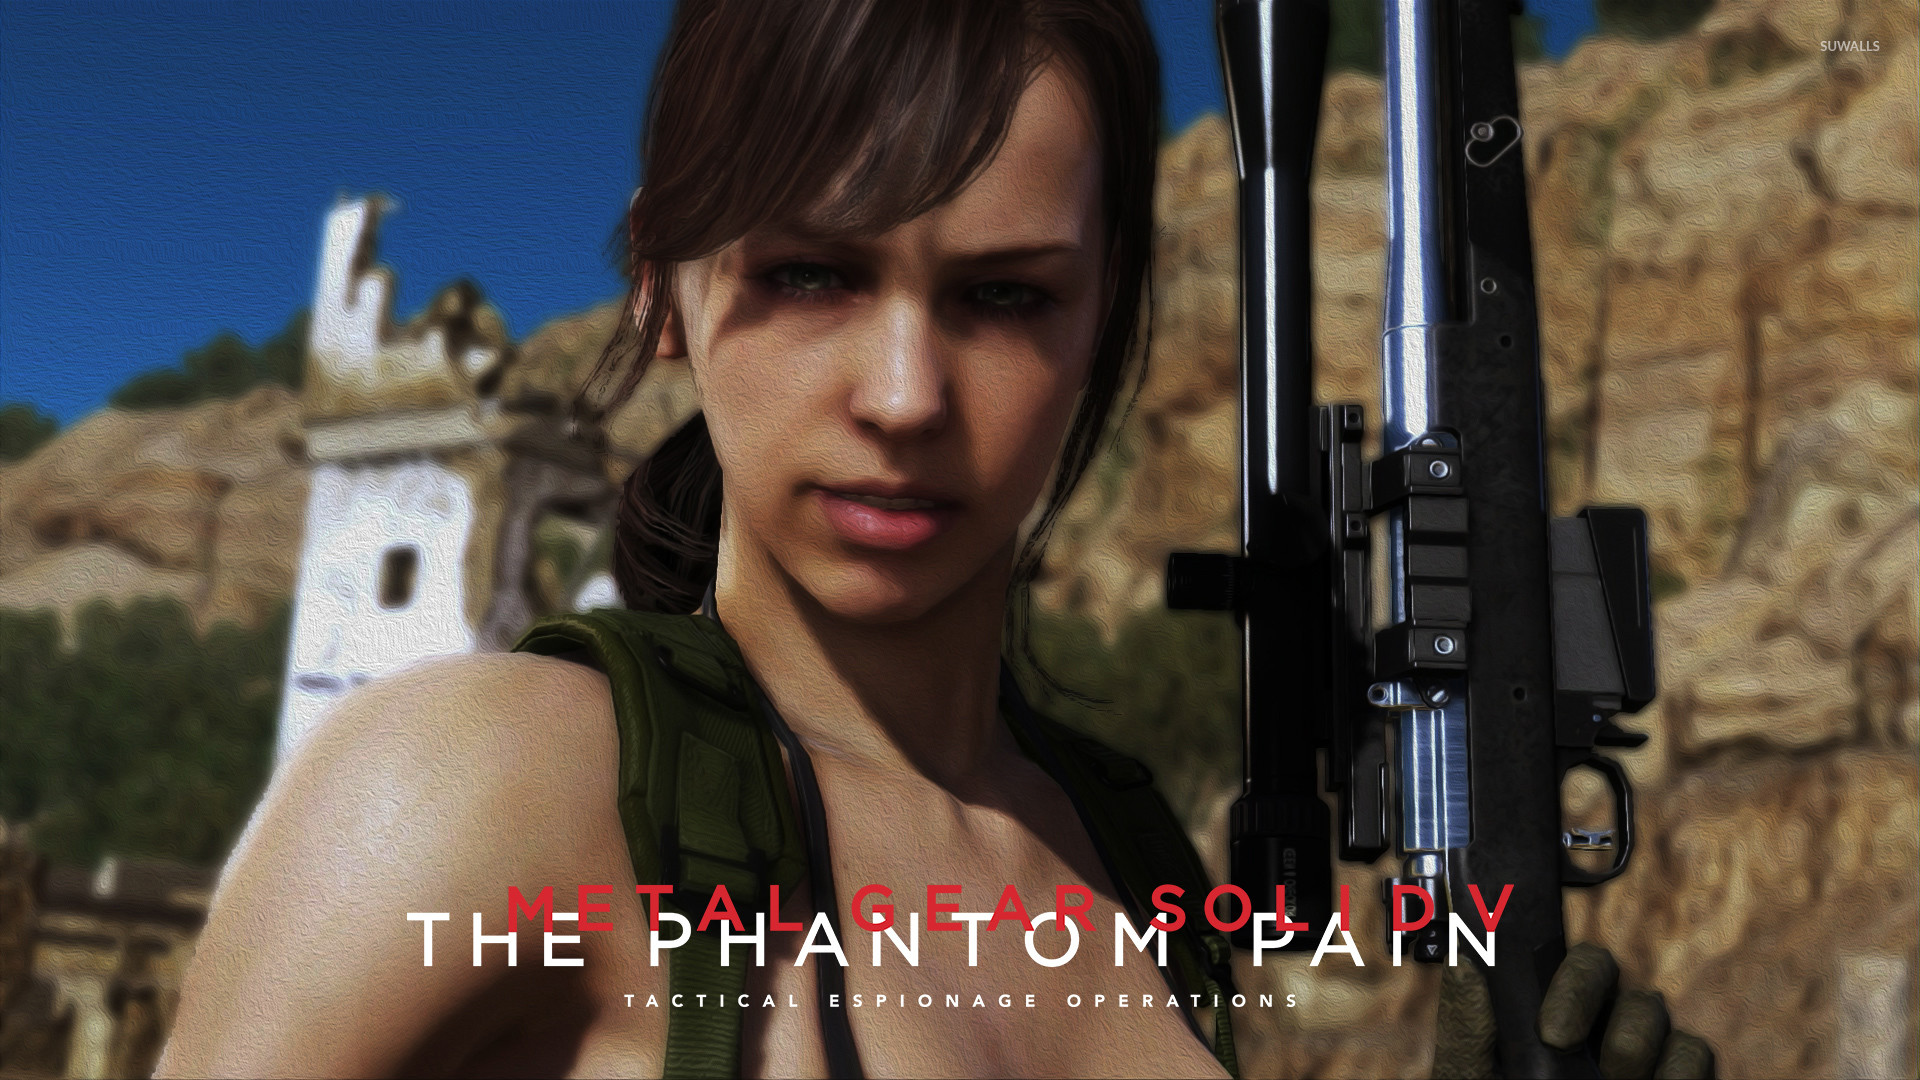 Metal Gear Solid V The Phantom Pain. Quiet by Kabukiart157